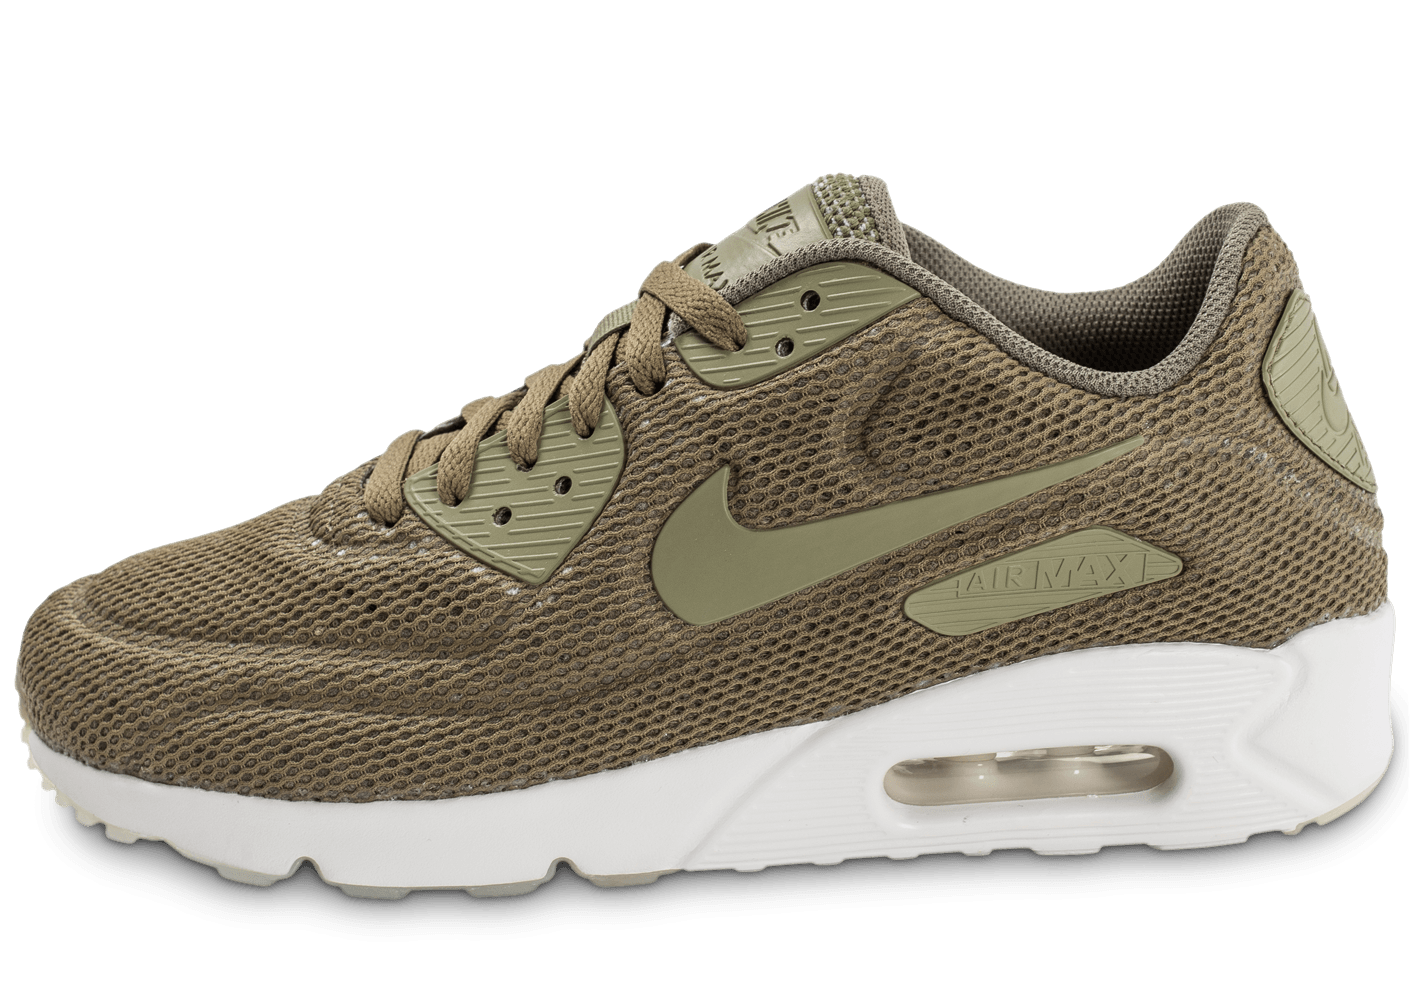 The Cheapest 898010 002 NIKE AIR MAX 90 ULTRA 2.0 BR PALE